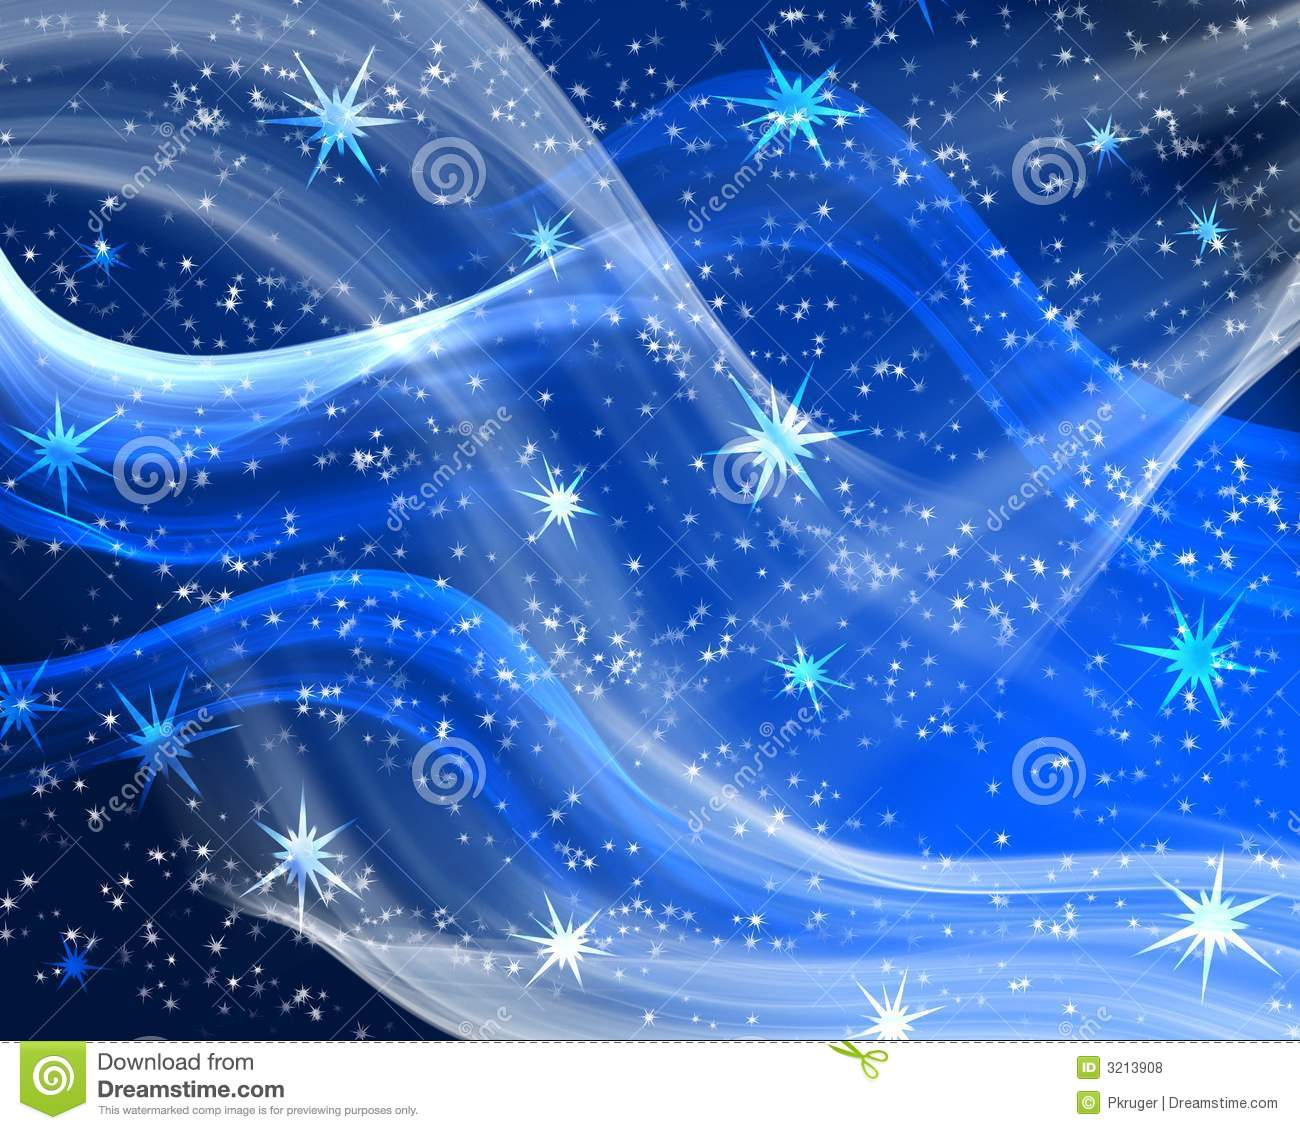 Magic Background Royalty Free Stock Photos - Image: 3213908